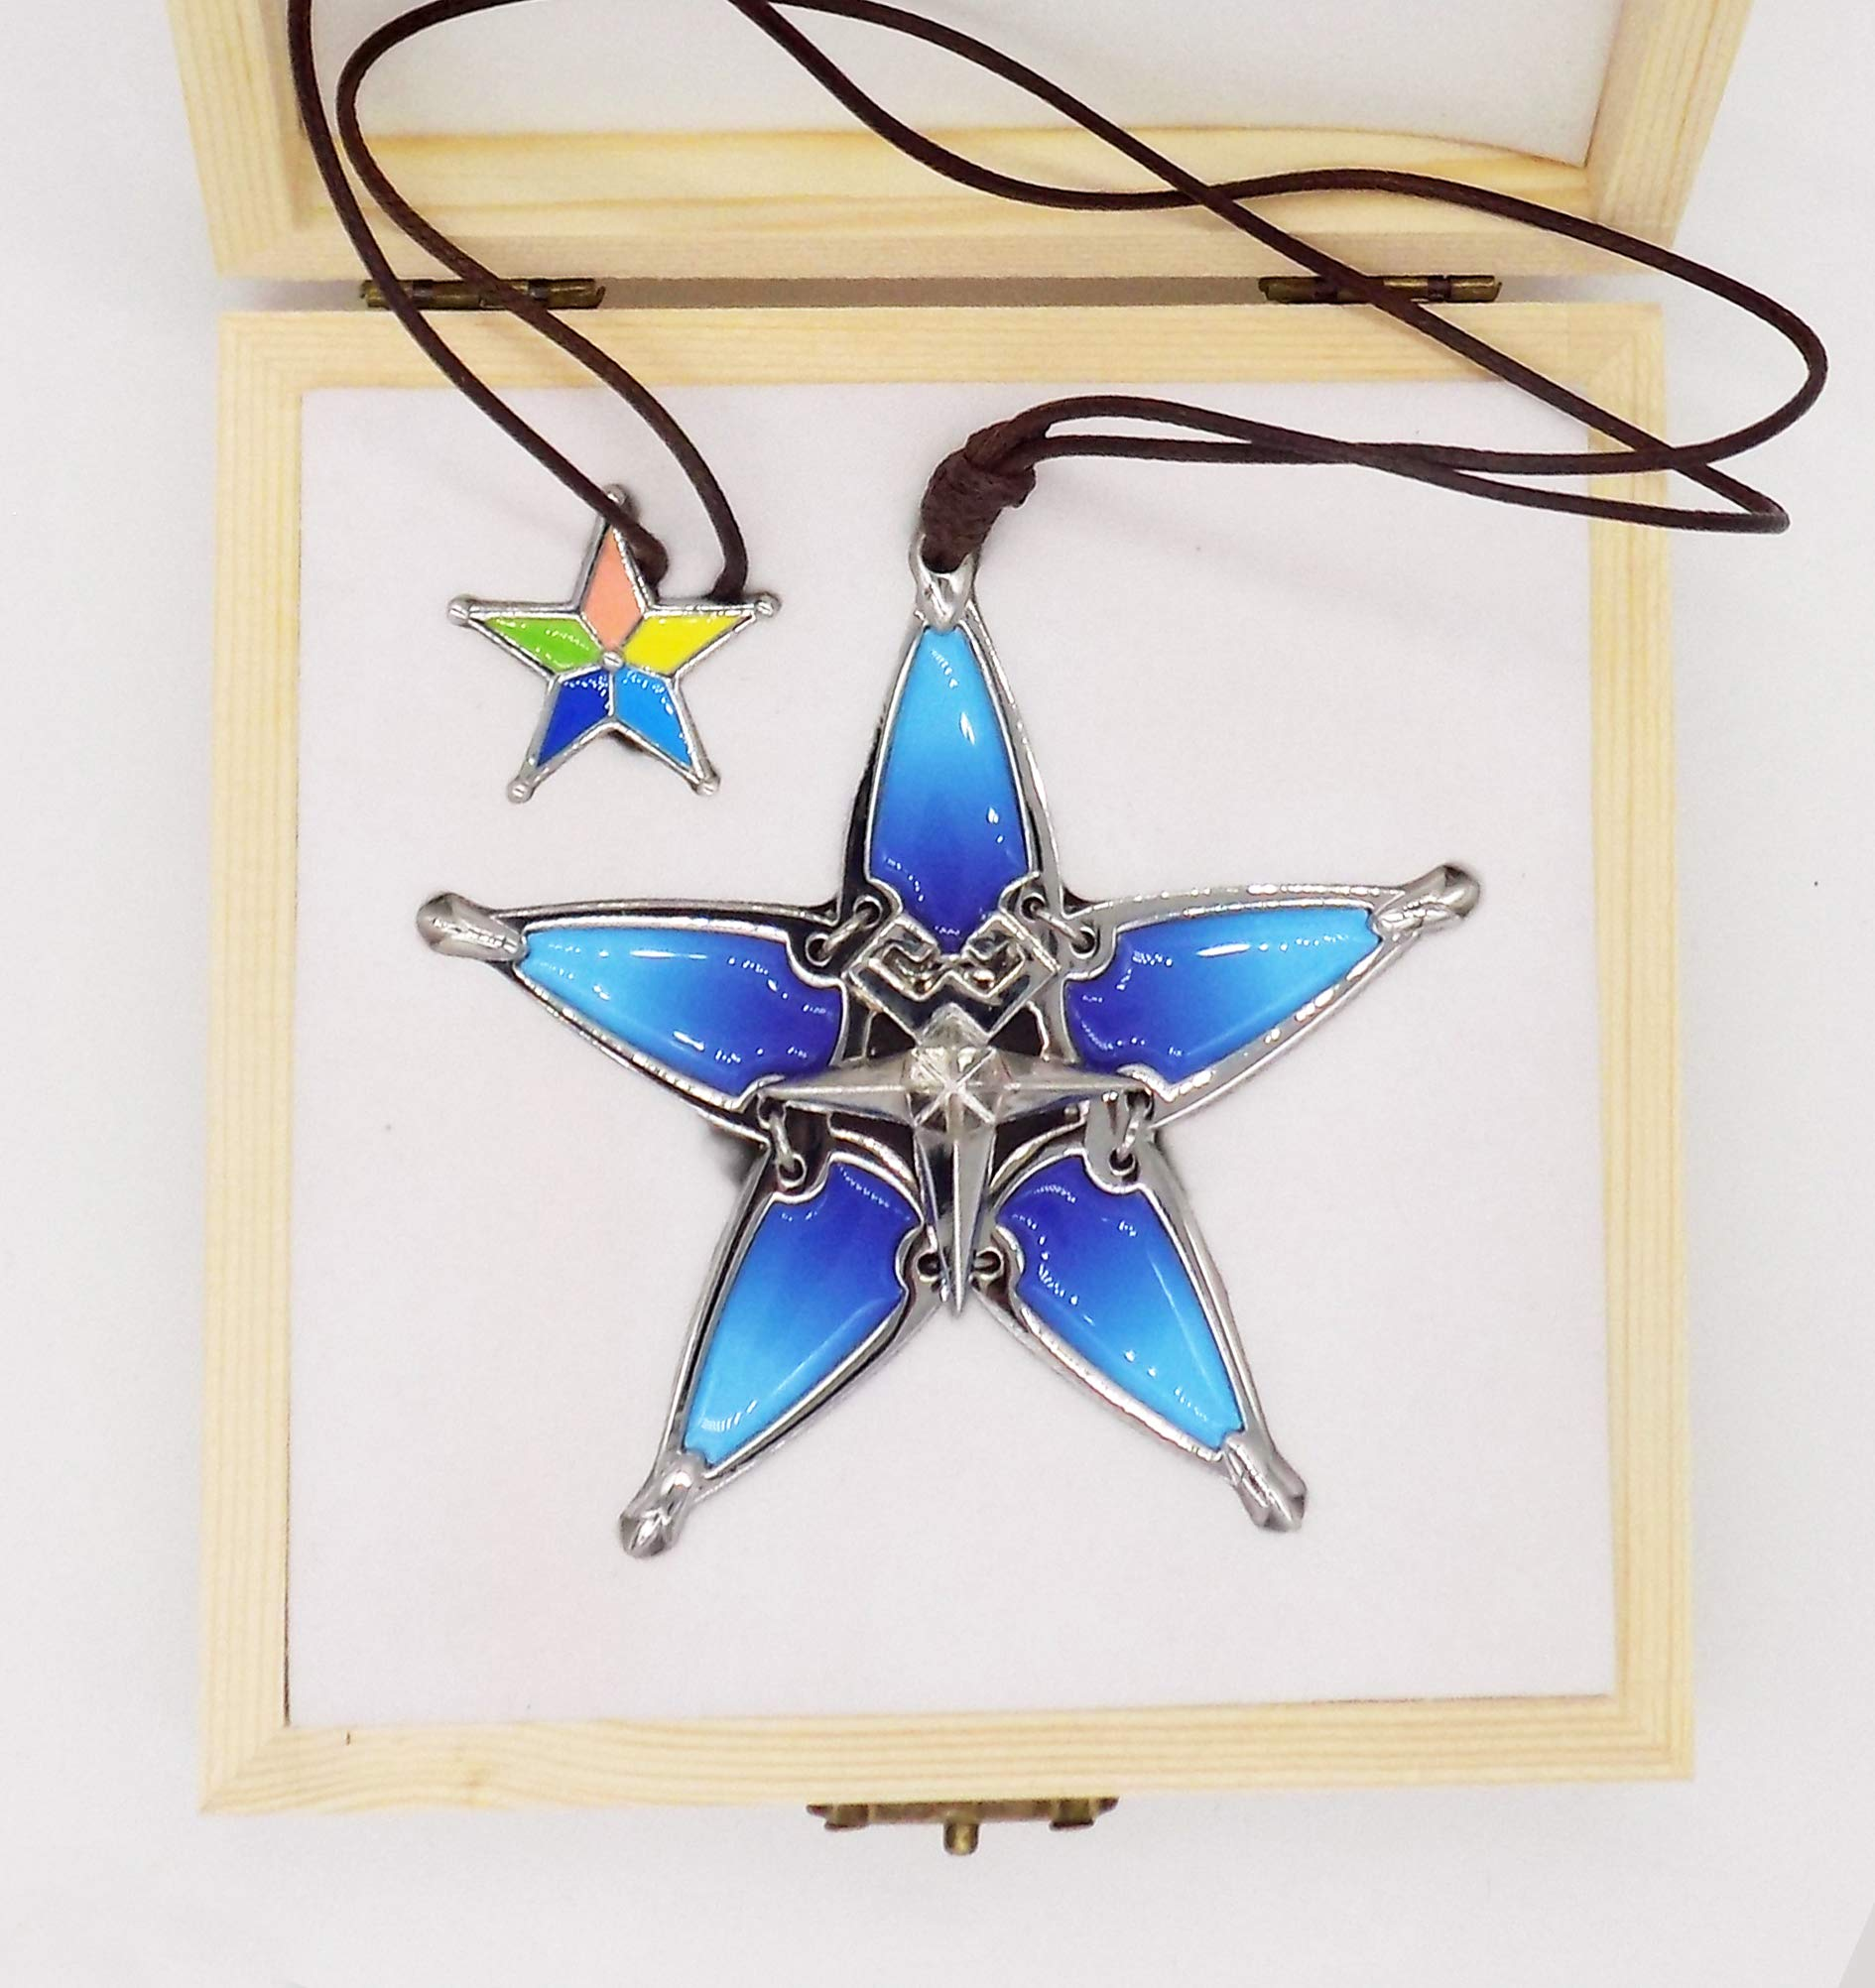 Decalism Aqua's Wayfinder from Kingdom Hearts Made of Metal